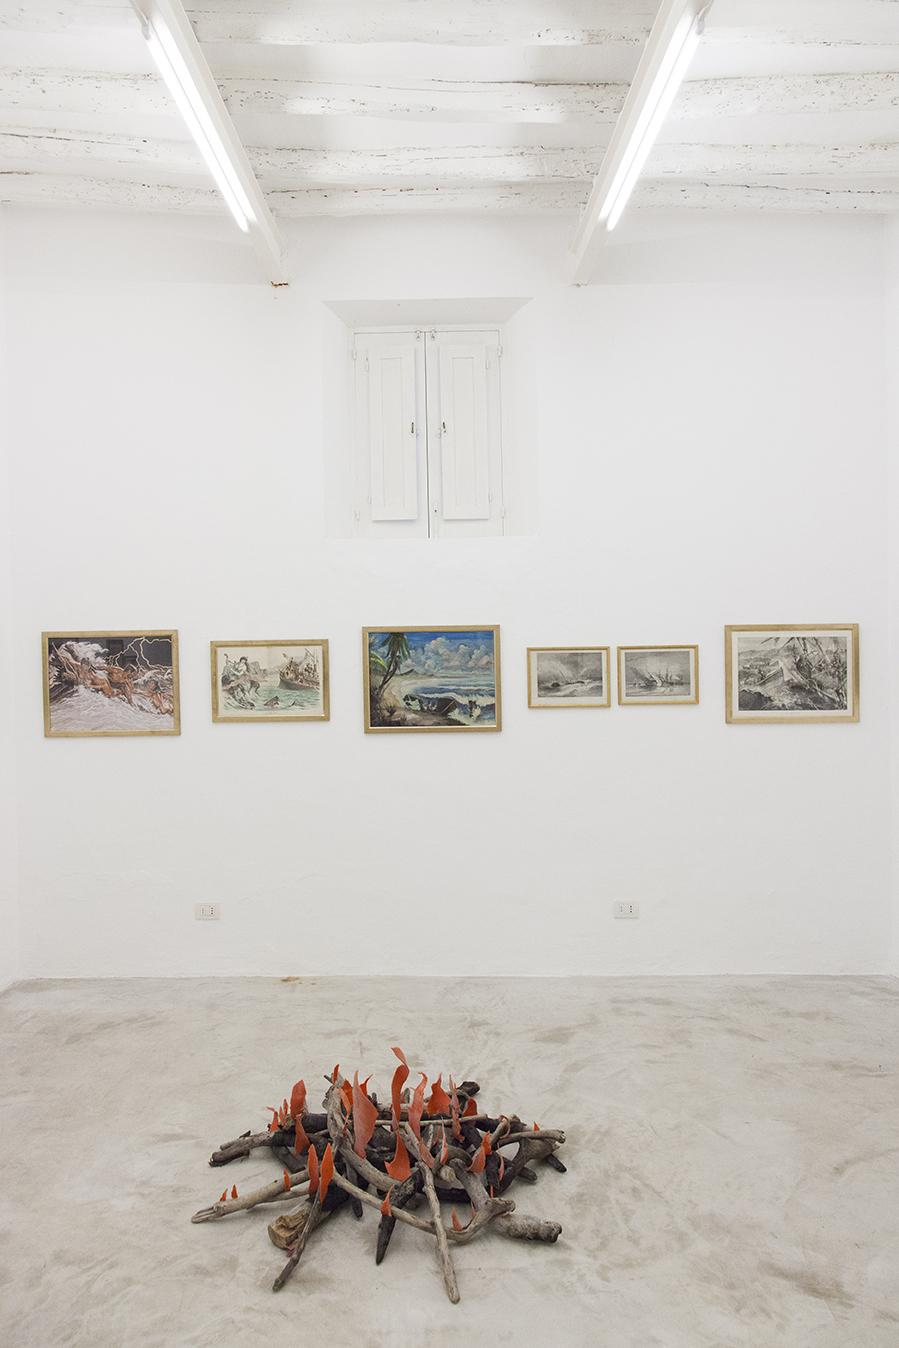 """Installation view """"I Will Go Where I Don't Belong"""" On the back: Works from the Henrot Family Collection In the front: Mike Nelson,/Diyagram (Amnesiac beach fire)/, 2015 Wood and plastic © Mike Nelson, courtesy 303 Gallery, New York  Photo:Giovanna Silva. Courtesy Fiorucci Art Trust, London"""